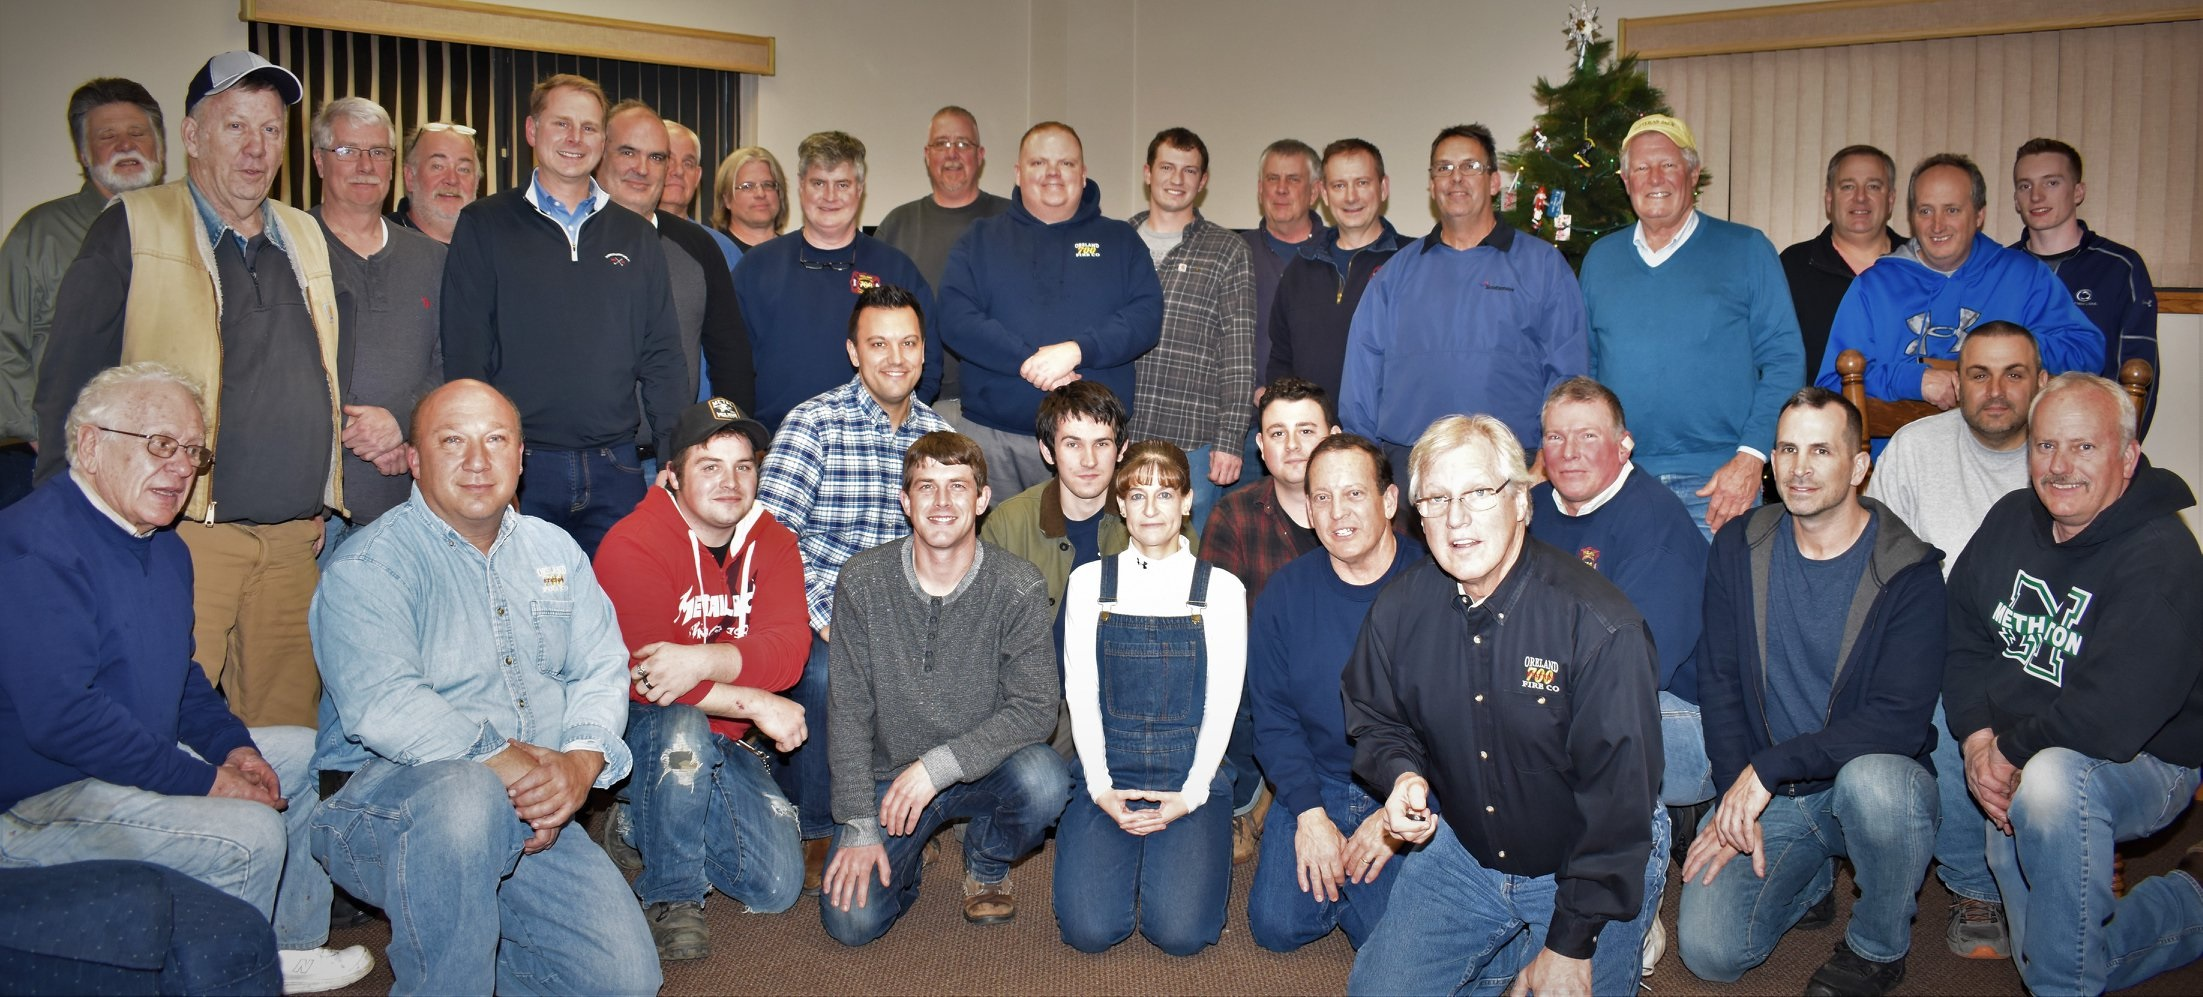 Oreland Fire Company - Christmas Party - One.jpg